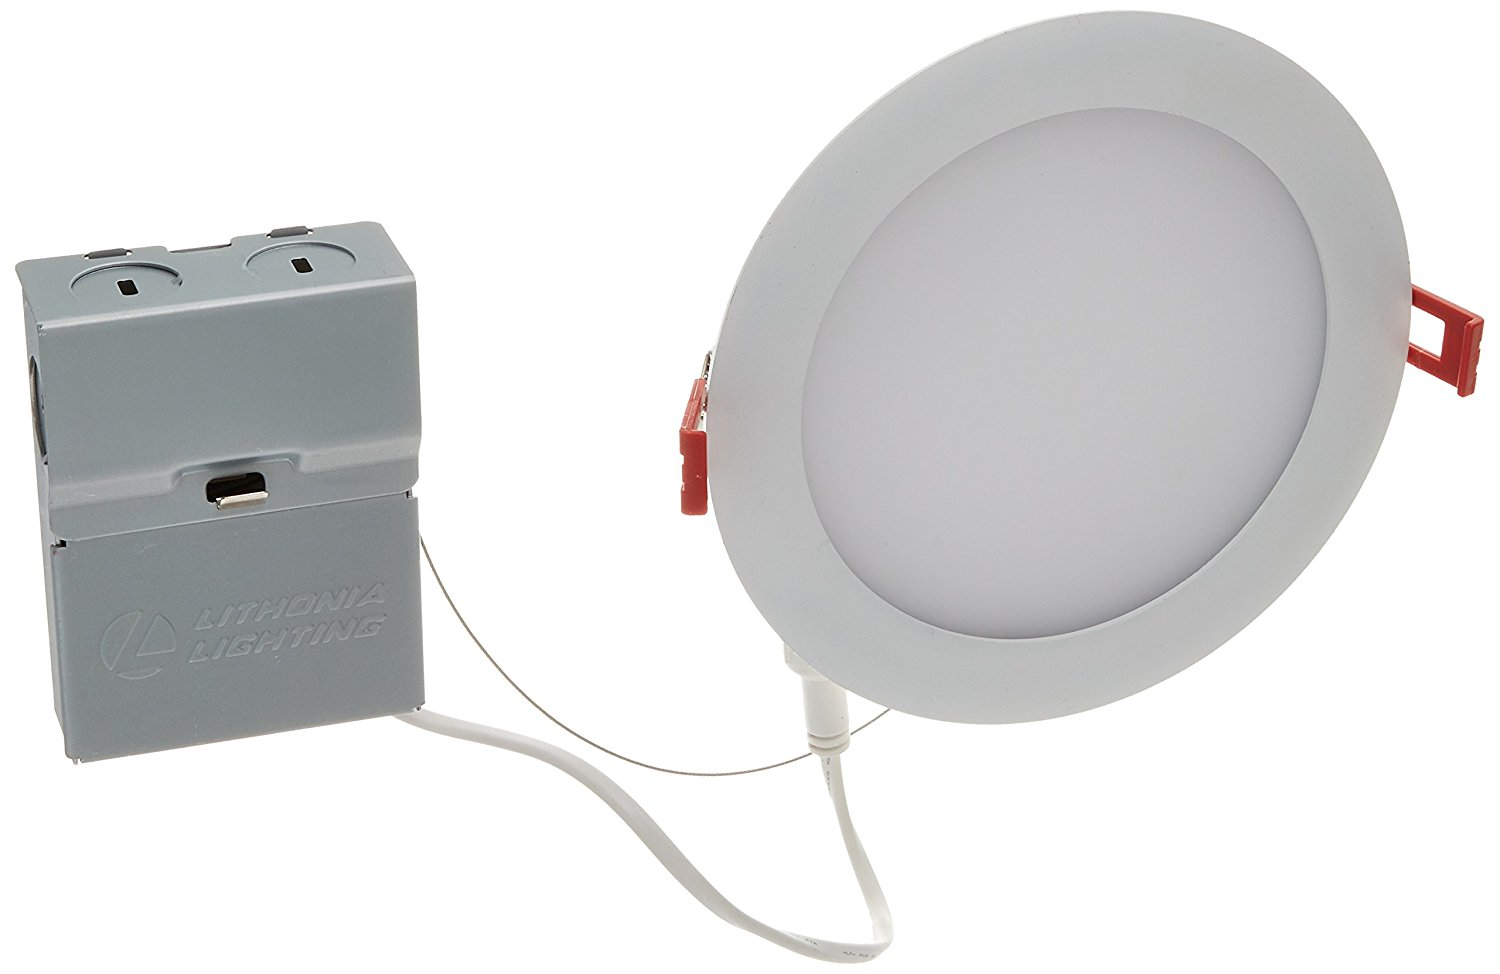 """Lithonia Lighting 13.6W Ultra Thin 6"""" Dimmable Recessed Ceiling Light, 4000K, White"""